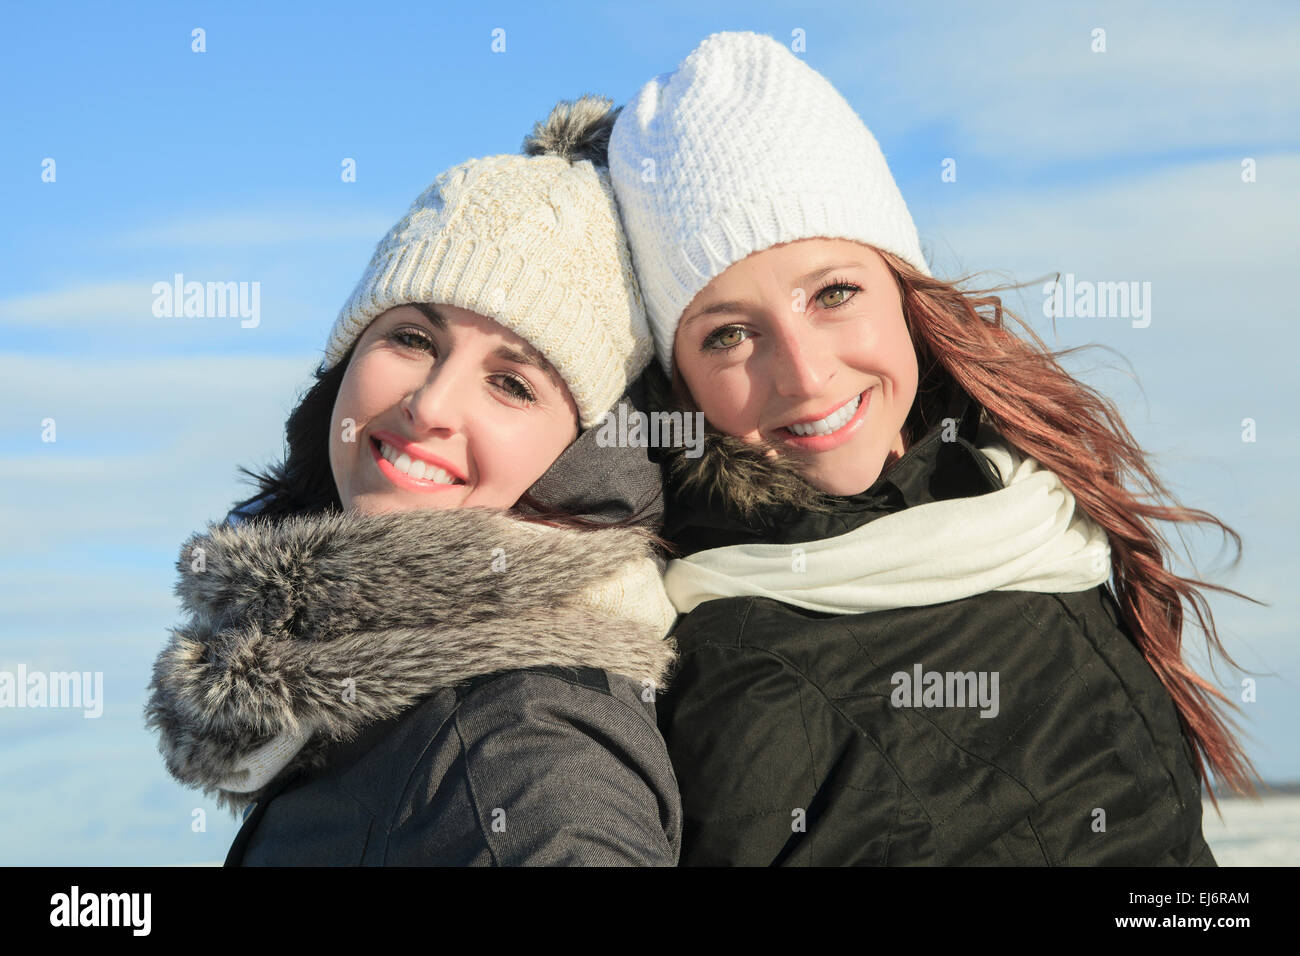 Two young girls having fun in winter park Stock Photo